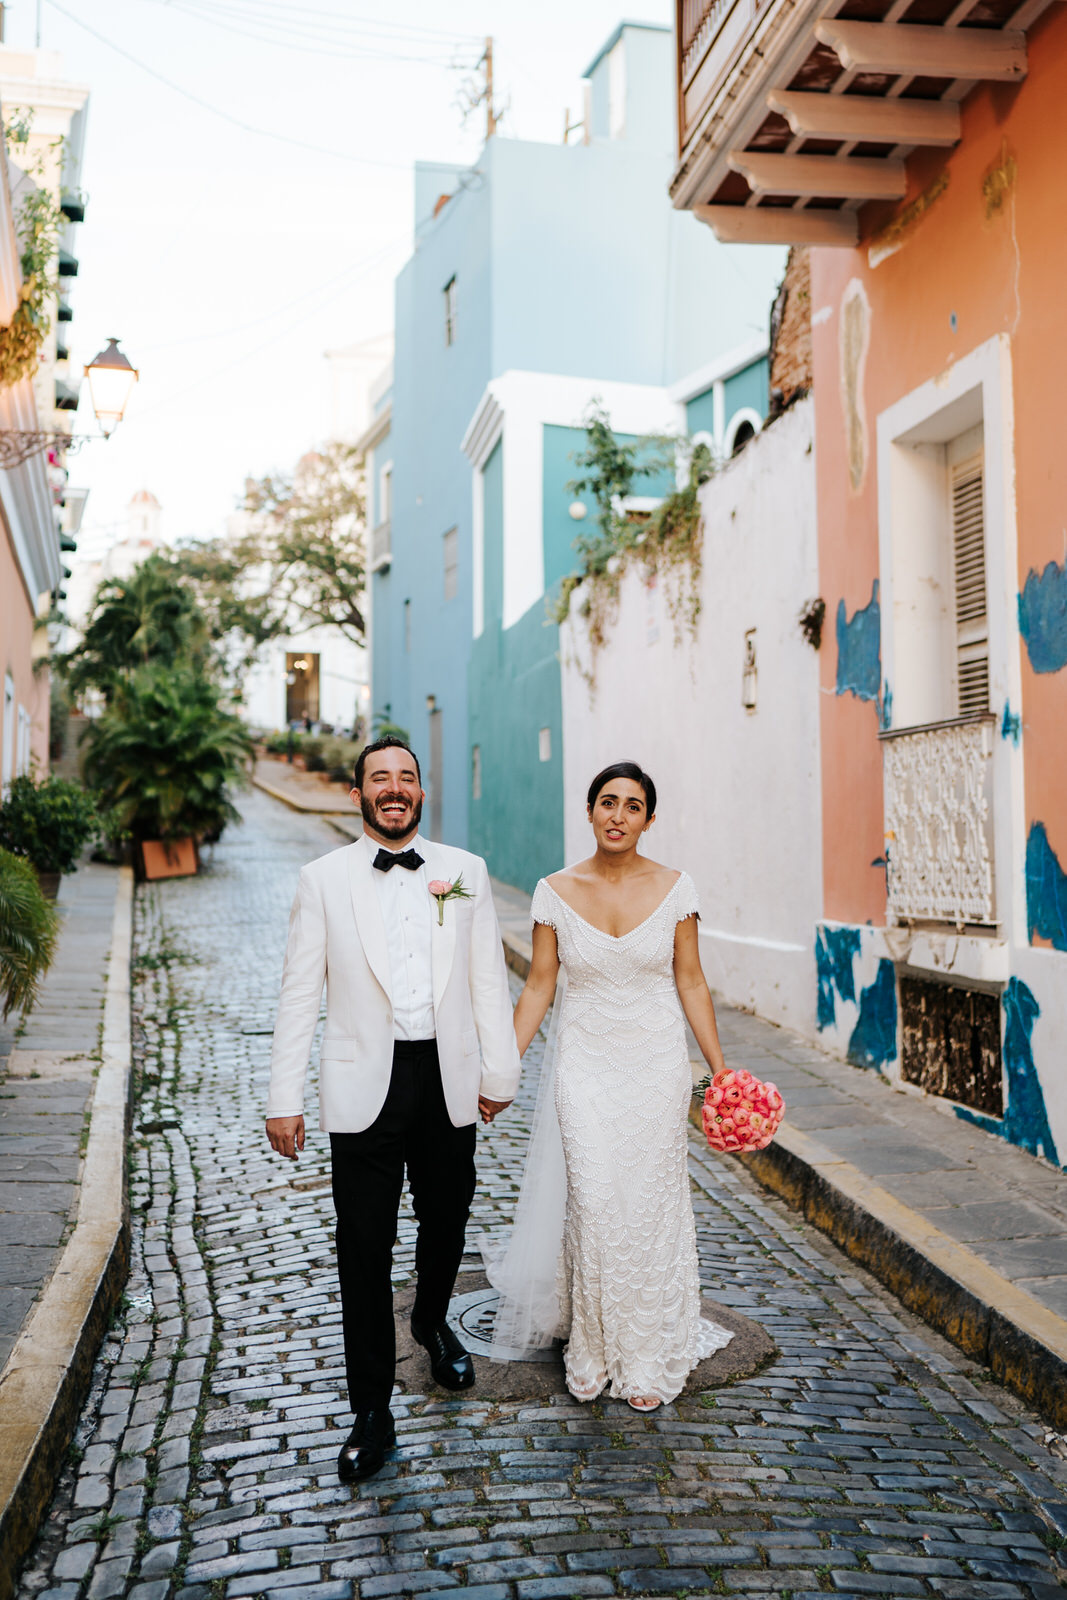 Bride and groom walk down the streets of Old San Juan while groom cannot contain his laughter and bride looks funnily at photographr